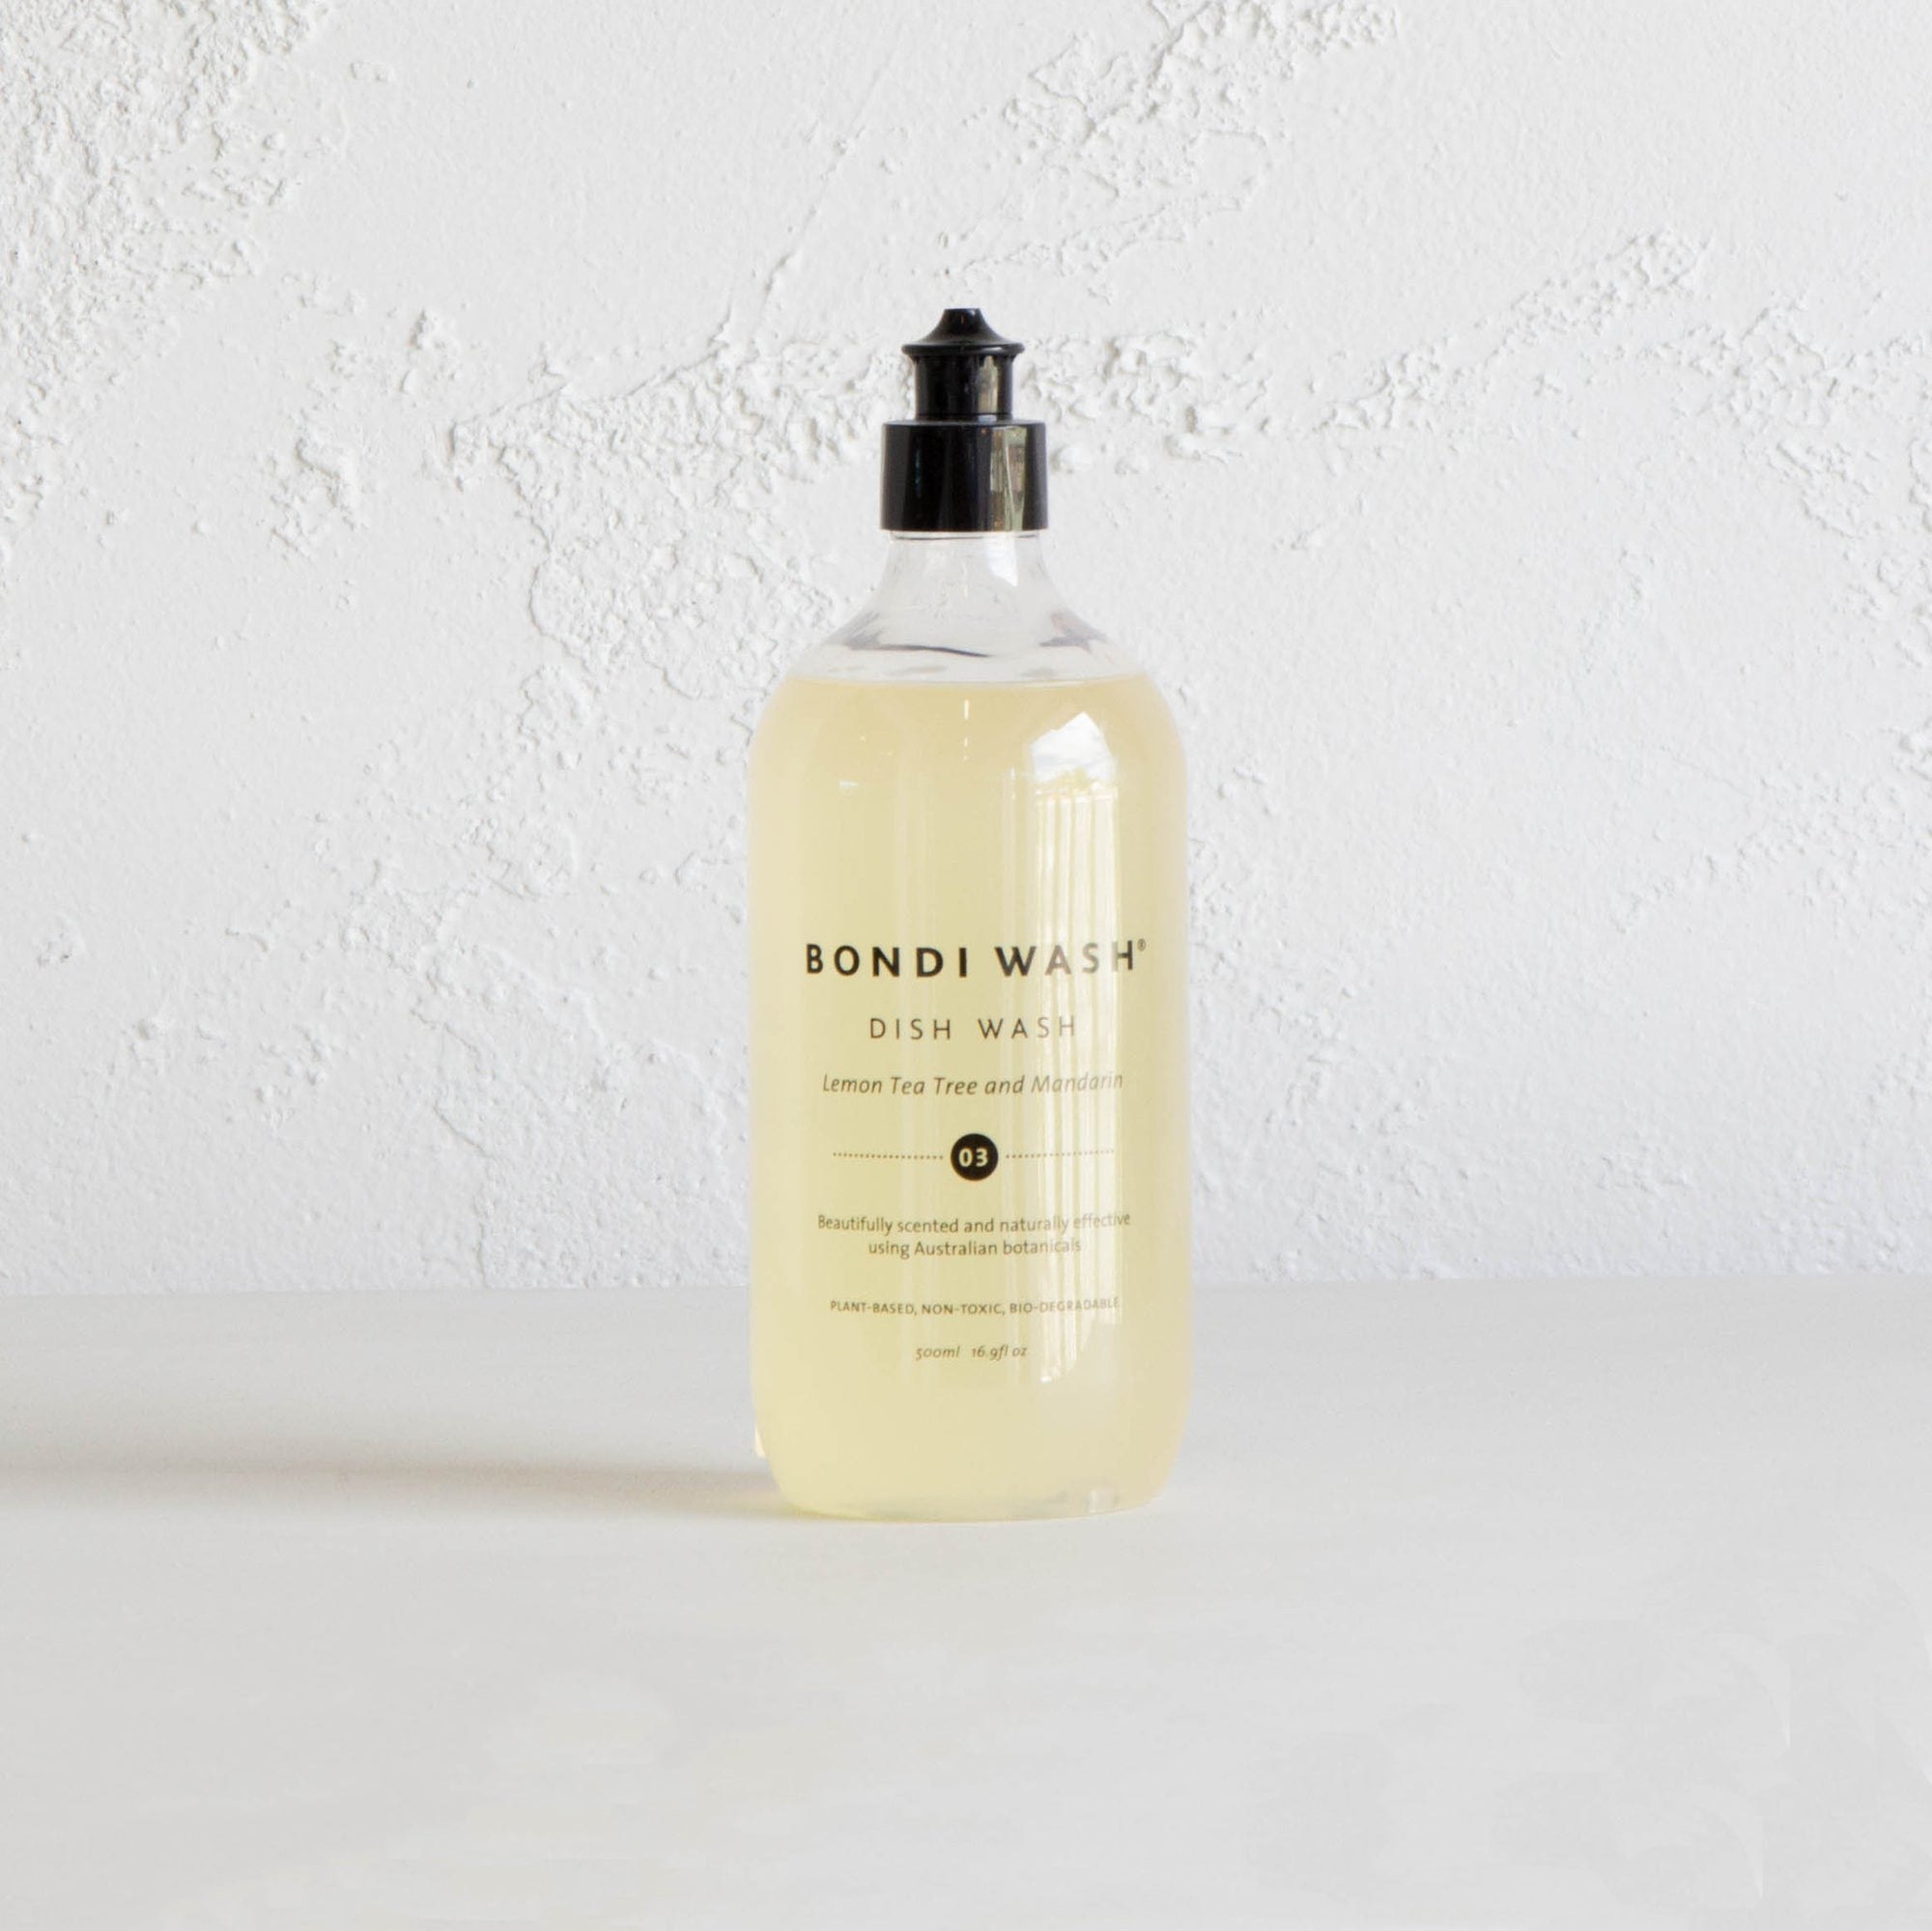 BONDI WASH DISH WASH  |  LEMON TEA TREE & MANDARIN